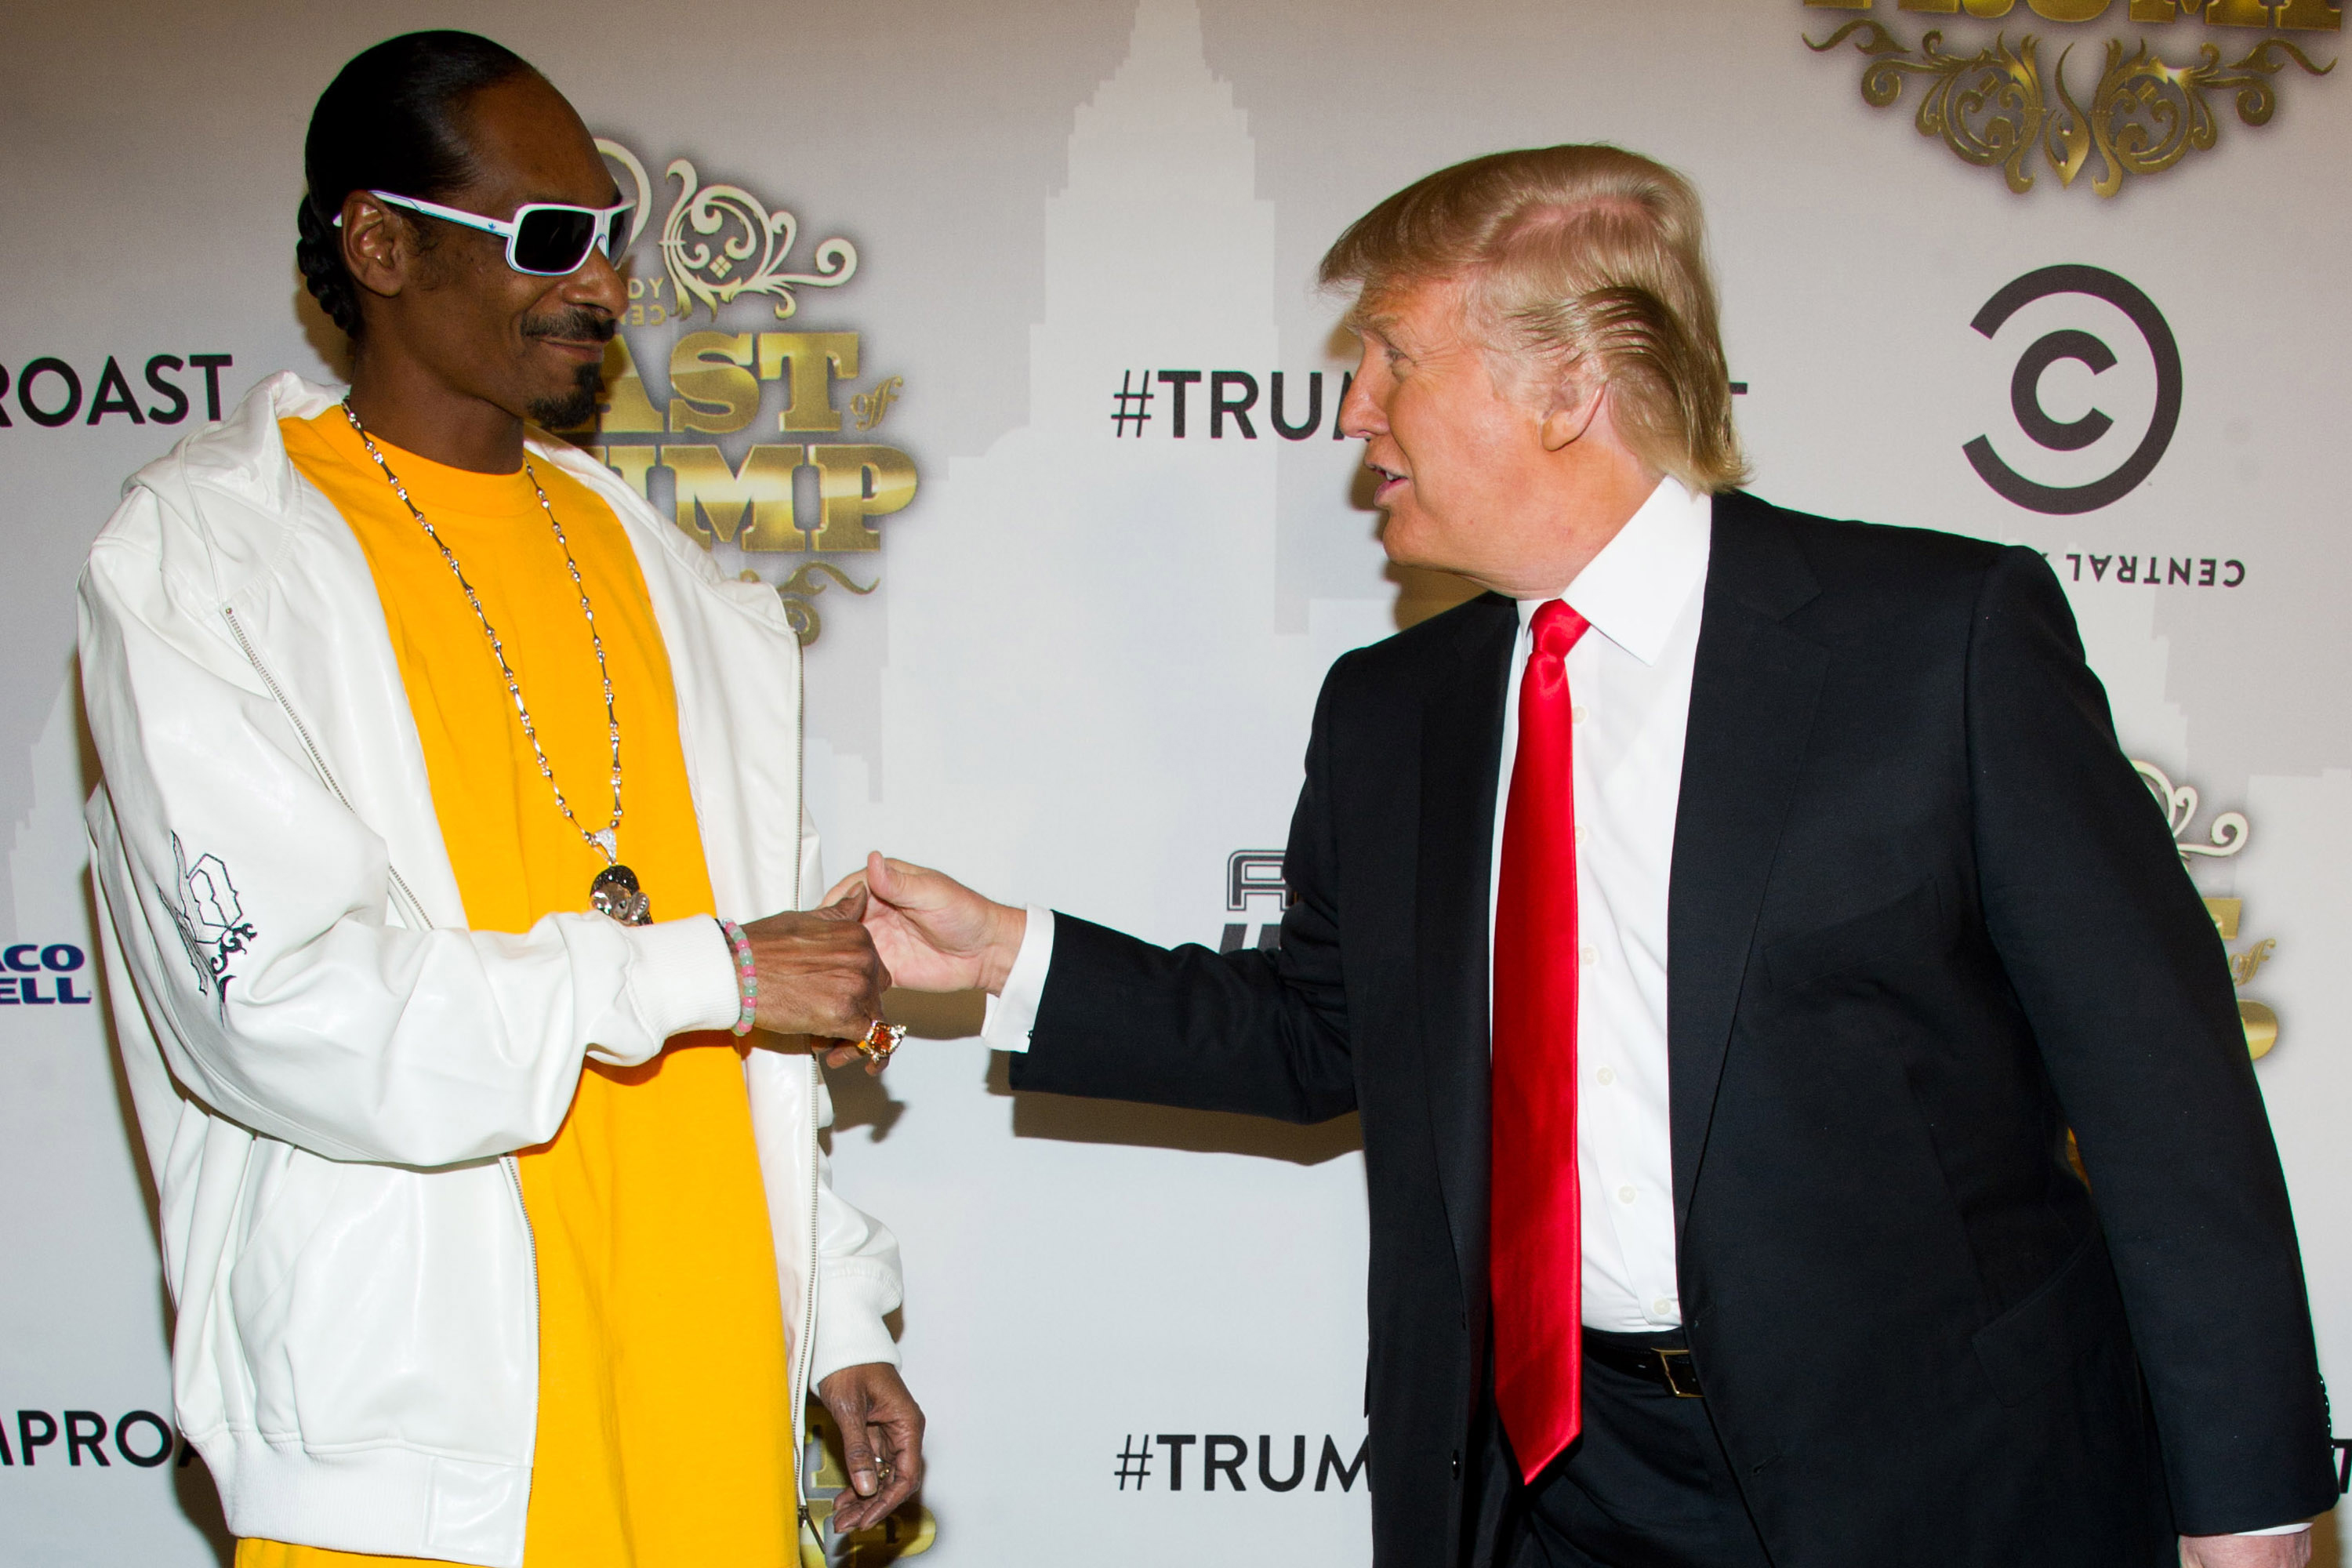 Snoop Dogg and Donald Trump arrive at the Comedy Central Roast of Donald Trump in New York on March 9, 2011.